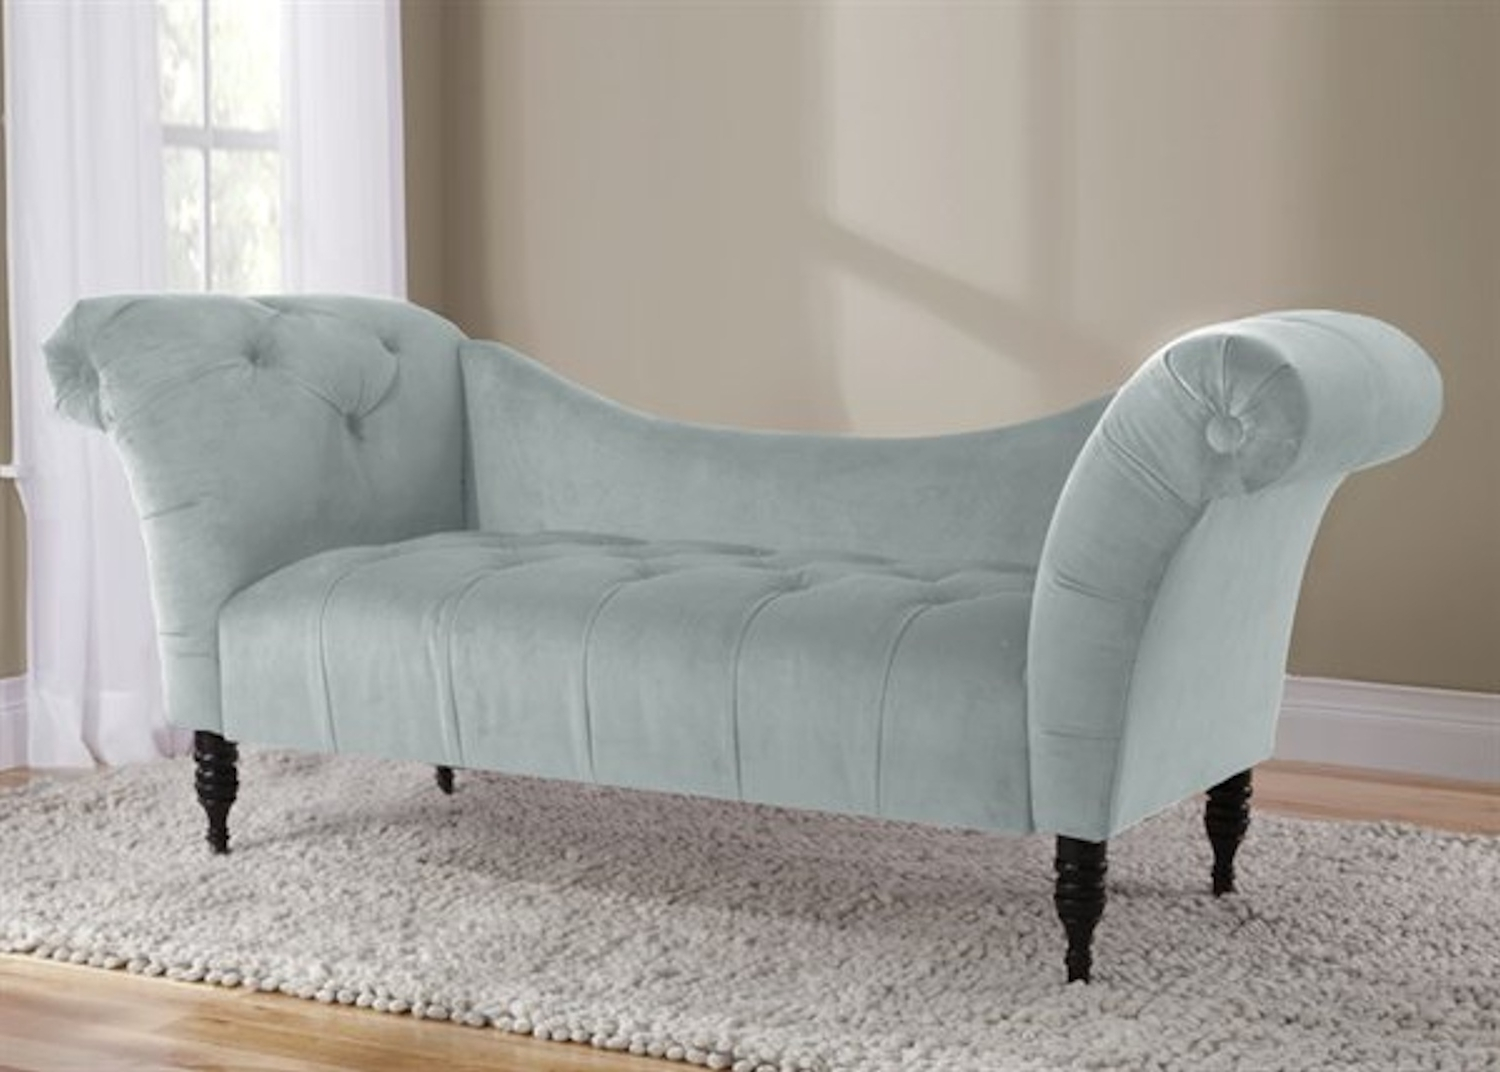 Velvet Chaise Lounges inside Latest Velvet Tufted Chaise Lounge - Poolskyline Furniture - Home